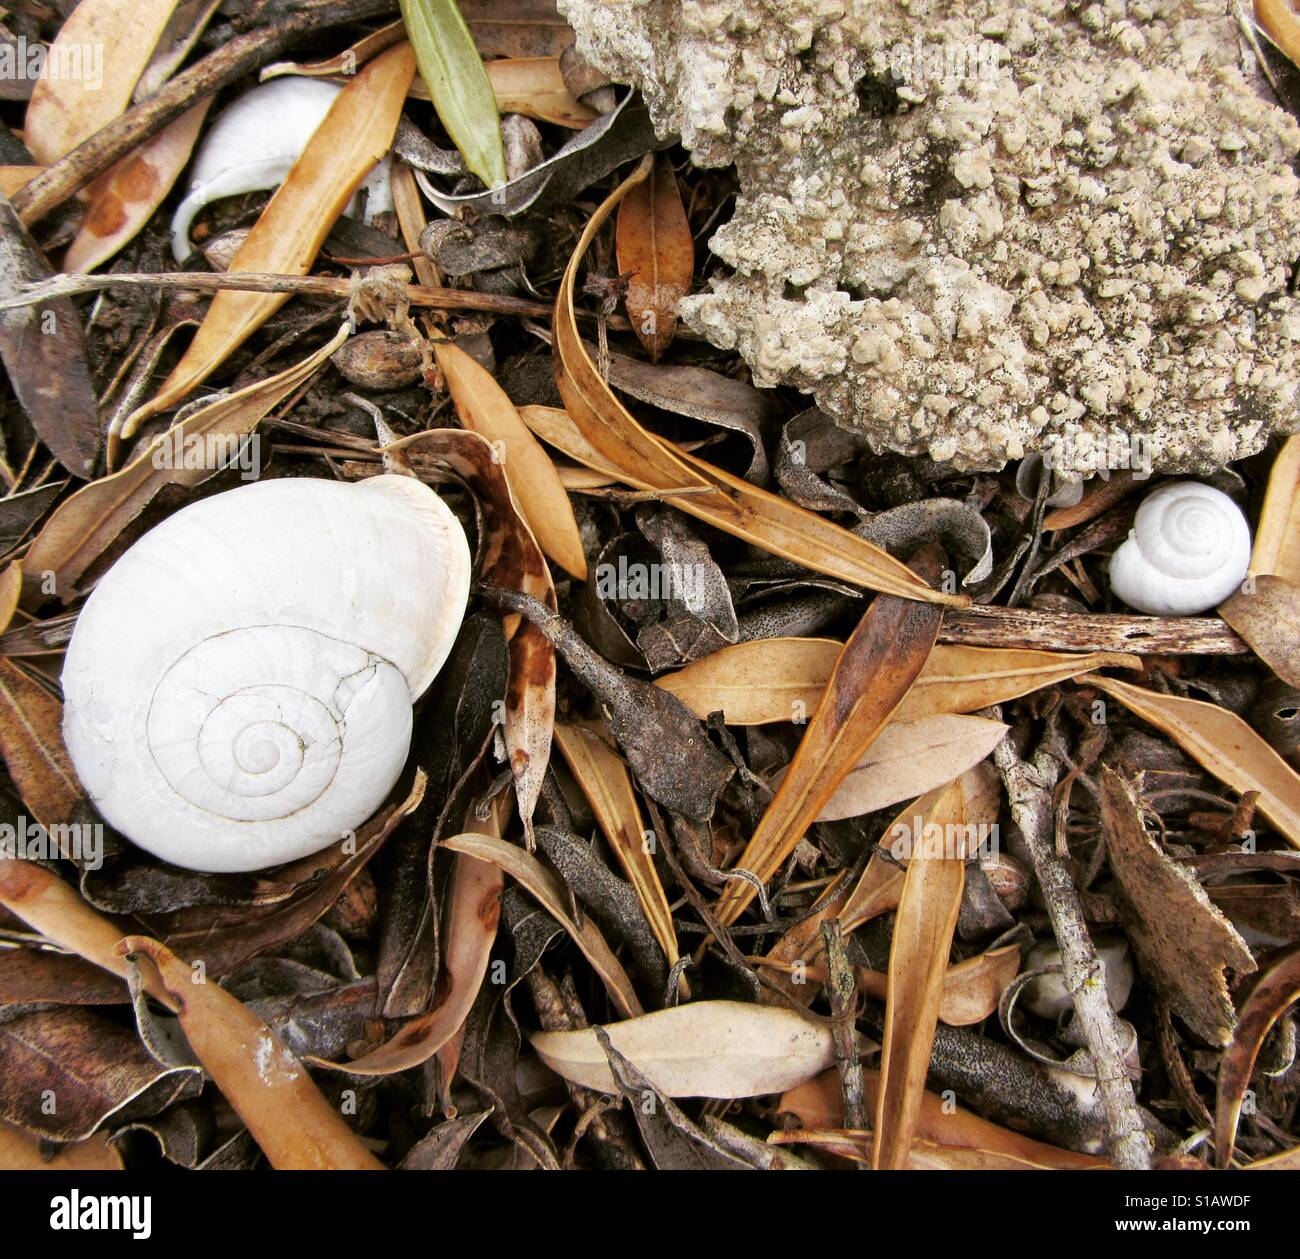 White shells amongst brown leaves - Stock Image